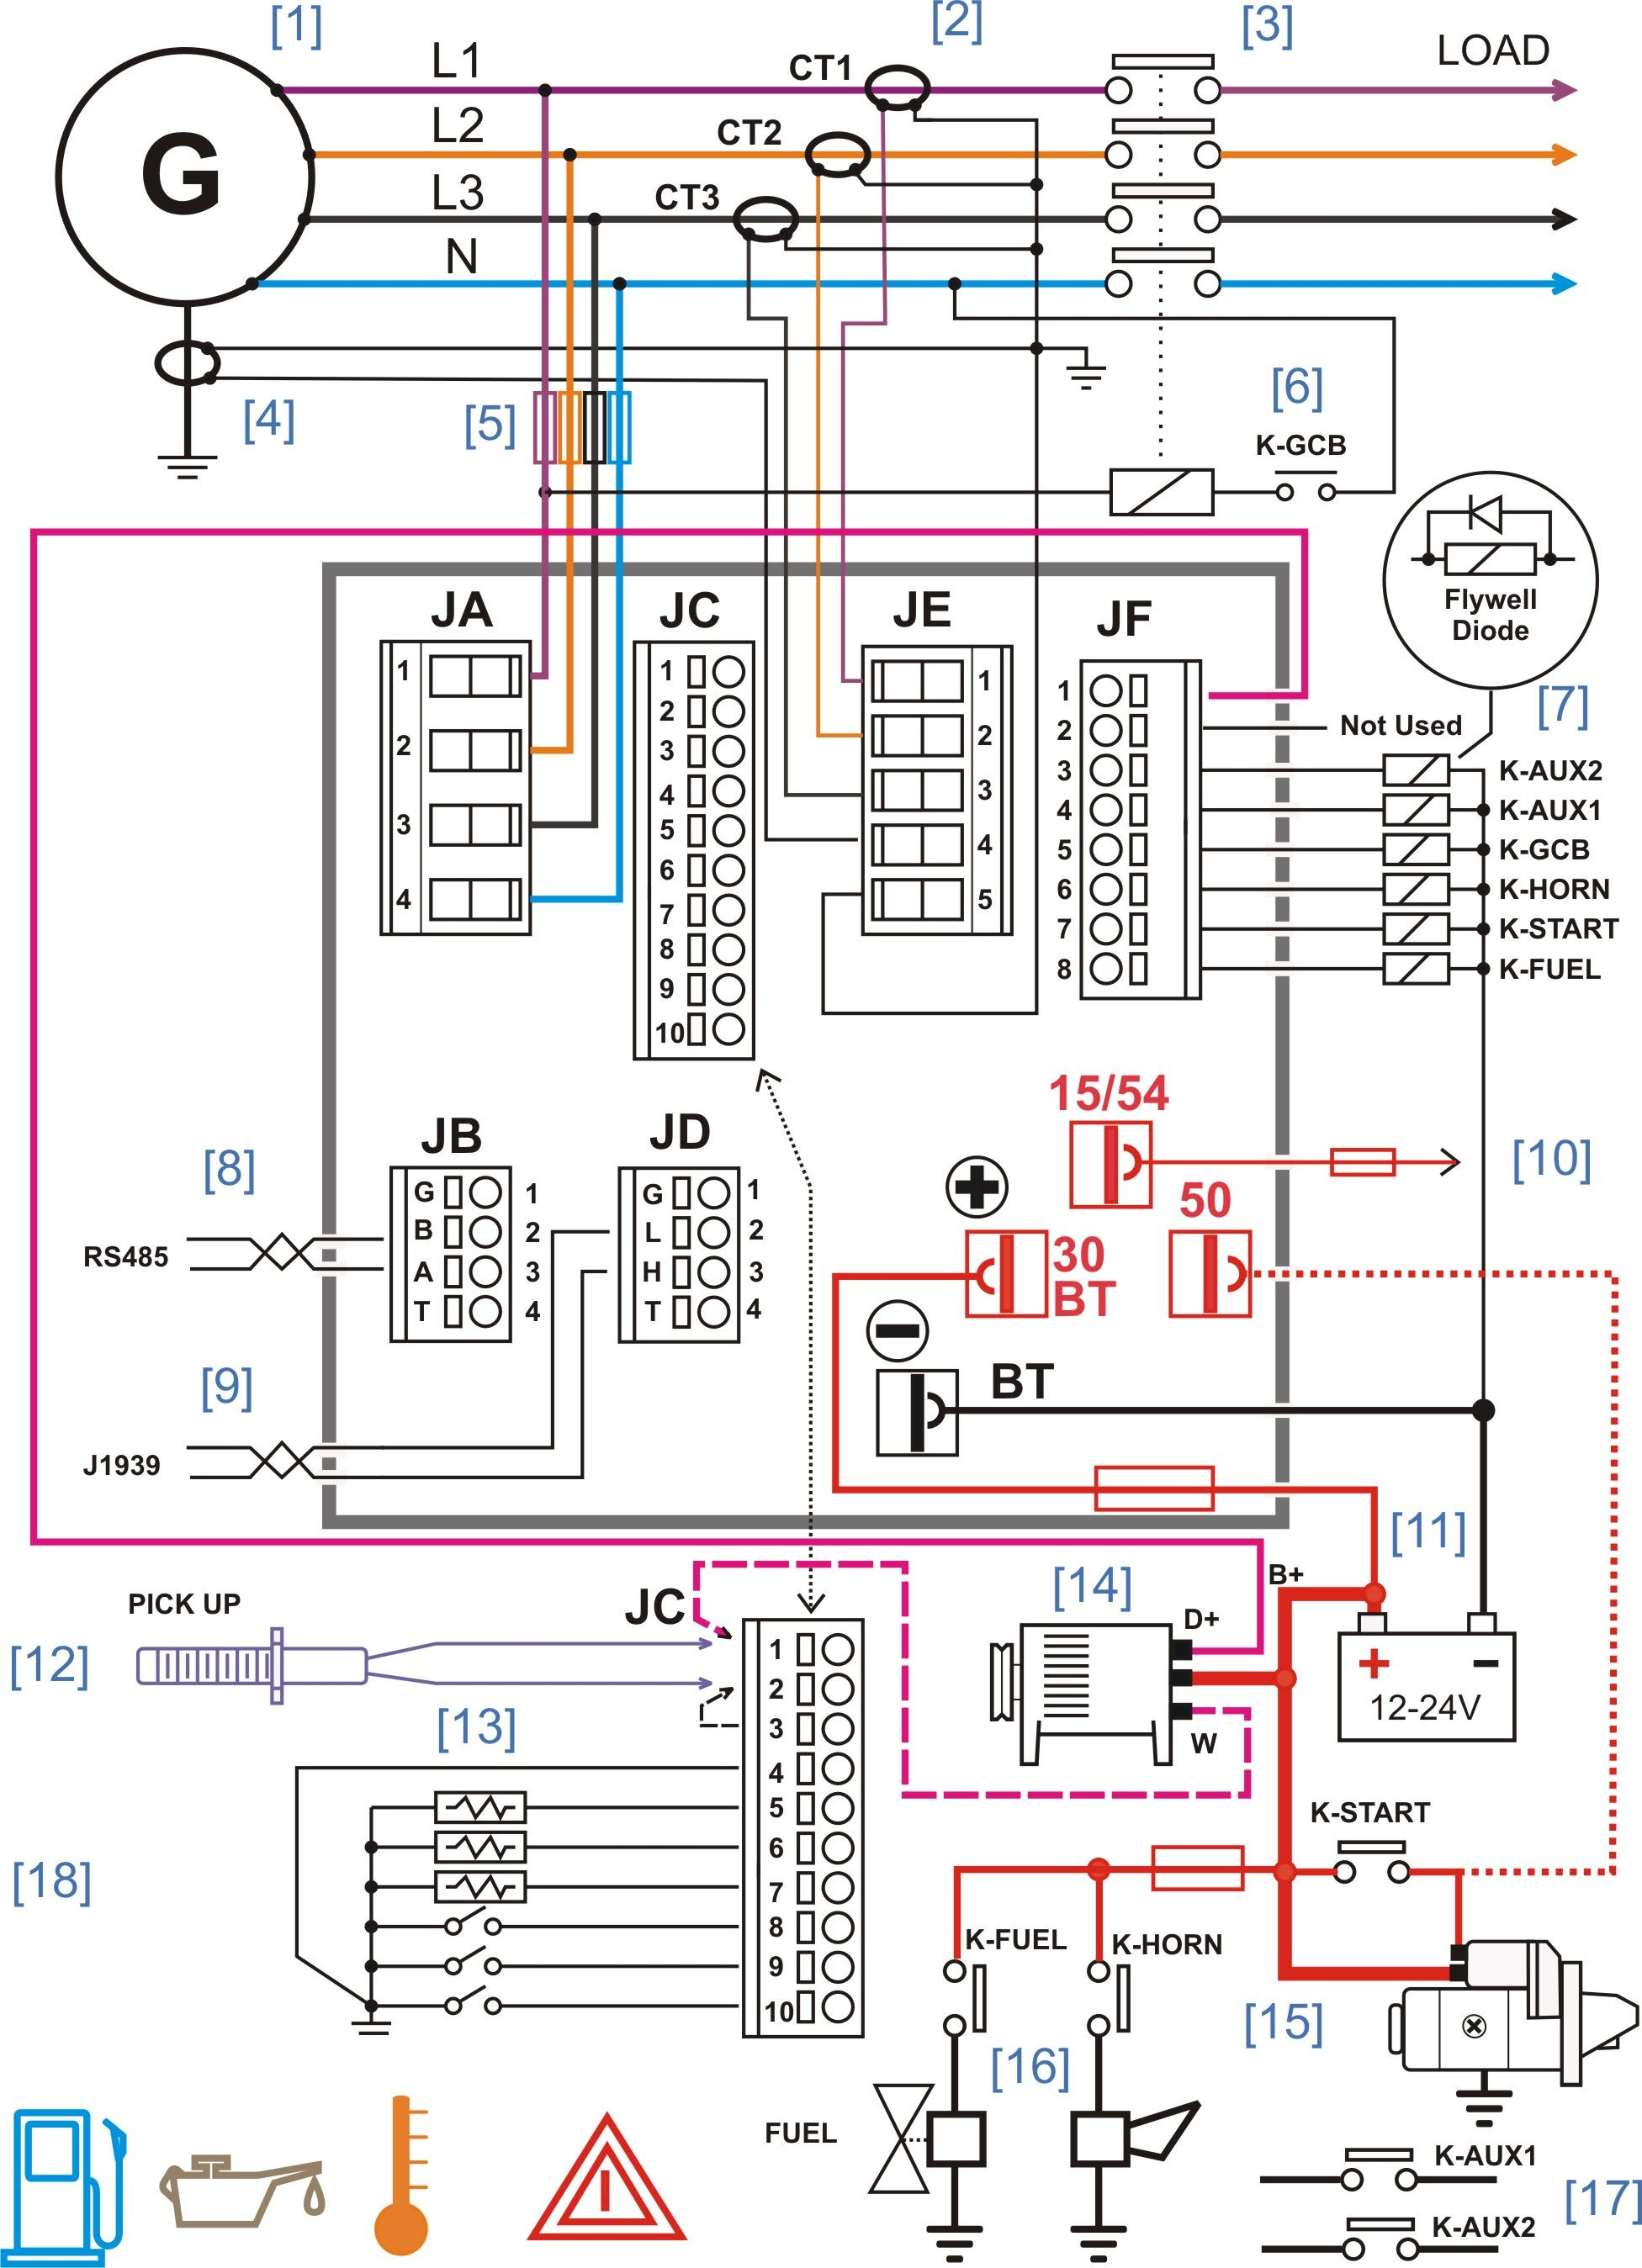 ats panel wiring diagram generators ht panel wiring diagram